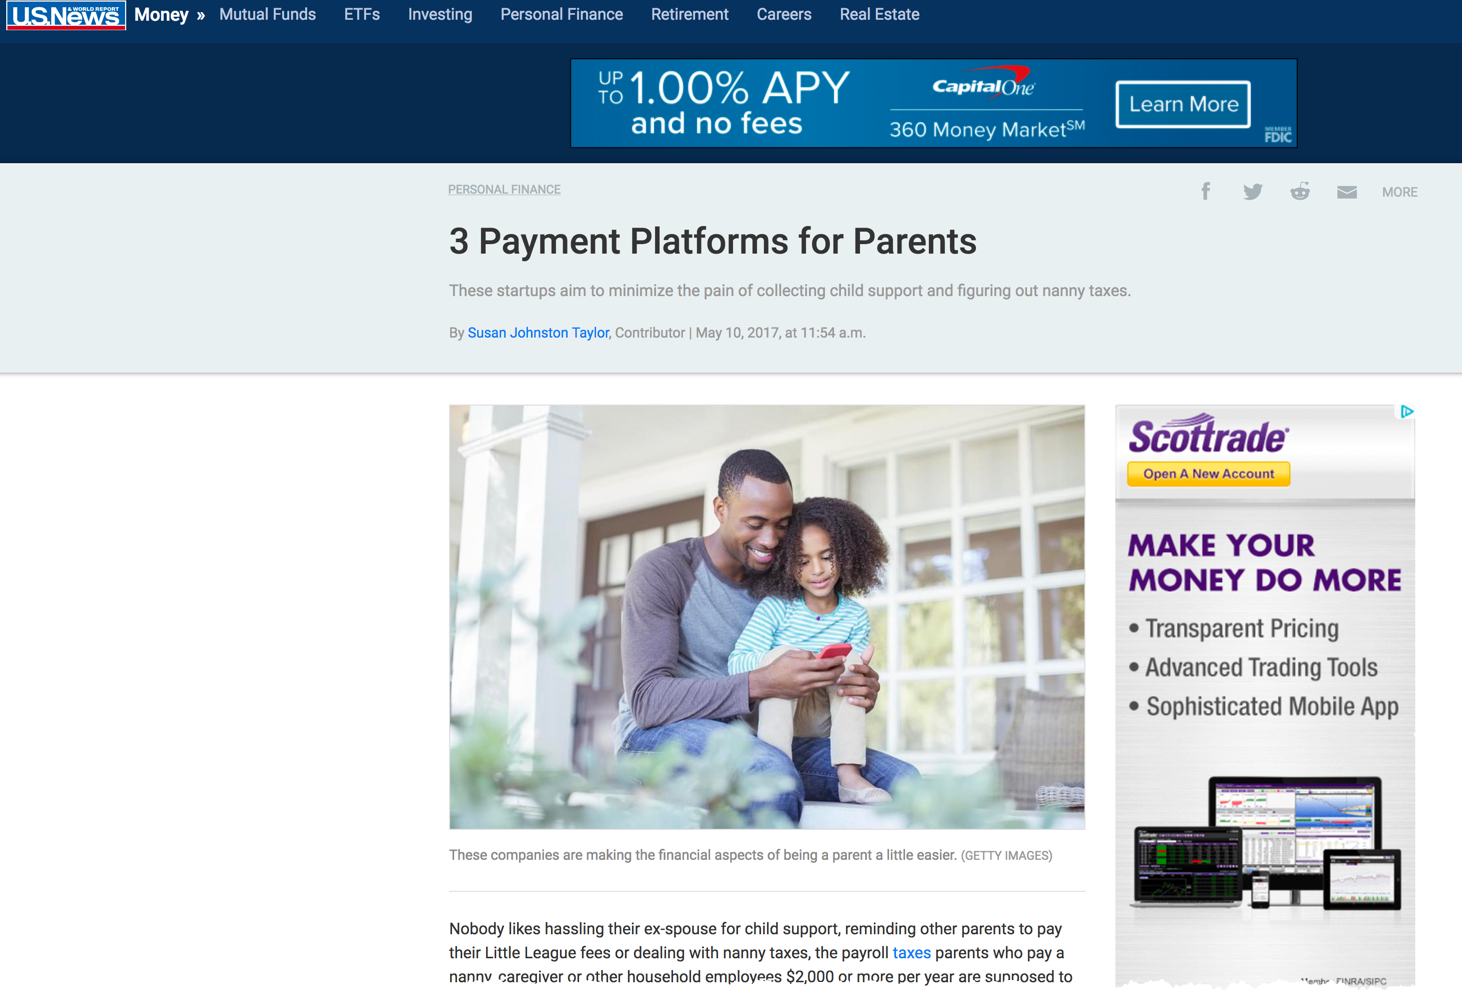 NannyPay in US News & World Report